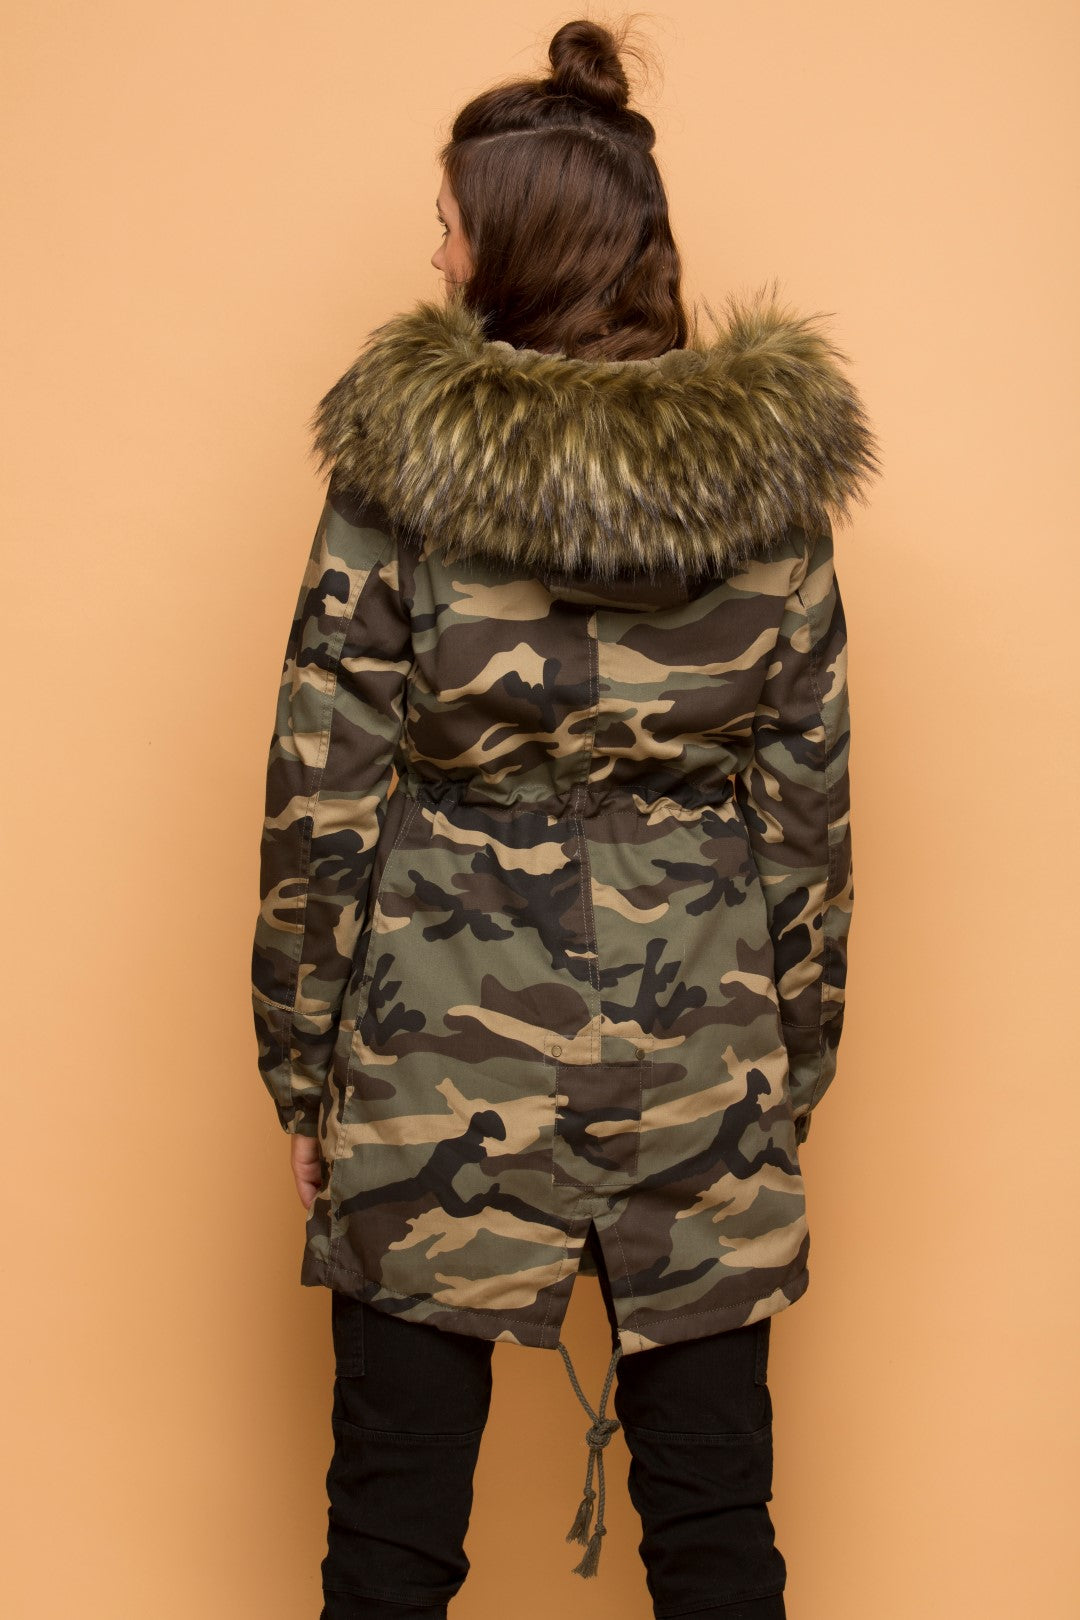 Reporting Fur Duty - Camo Hooded Coat by Coalition